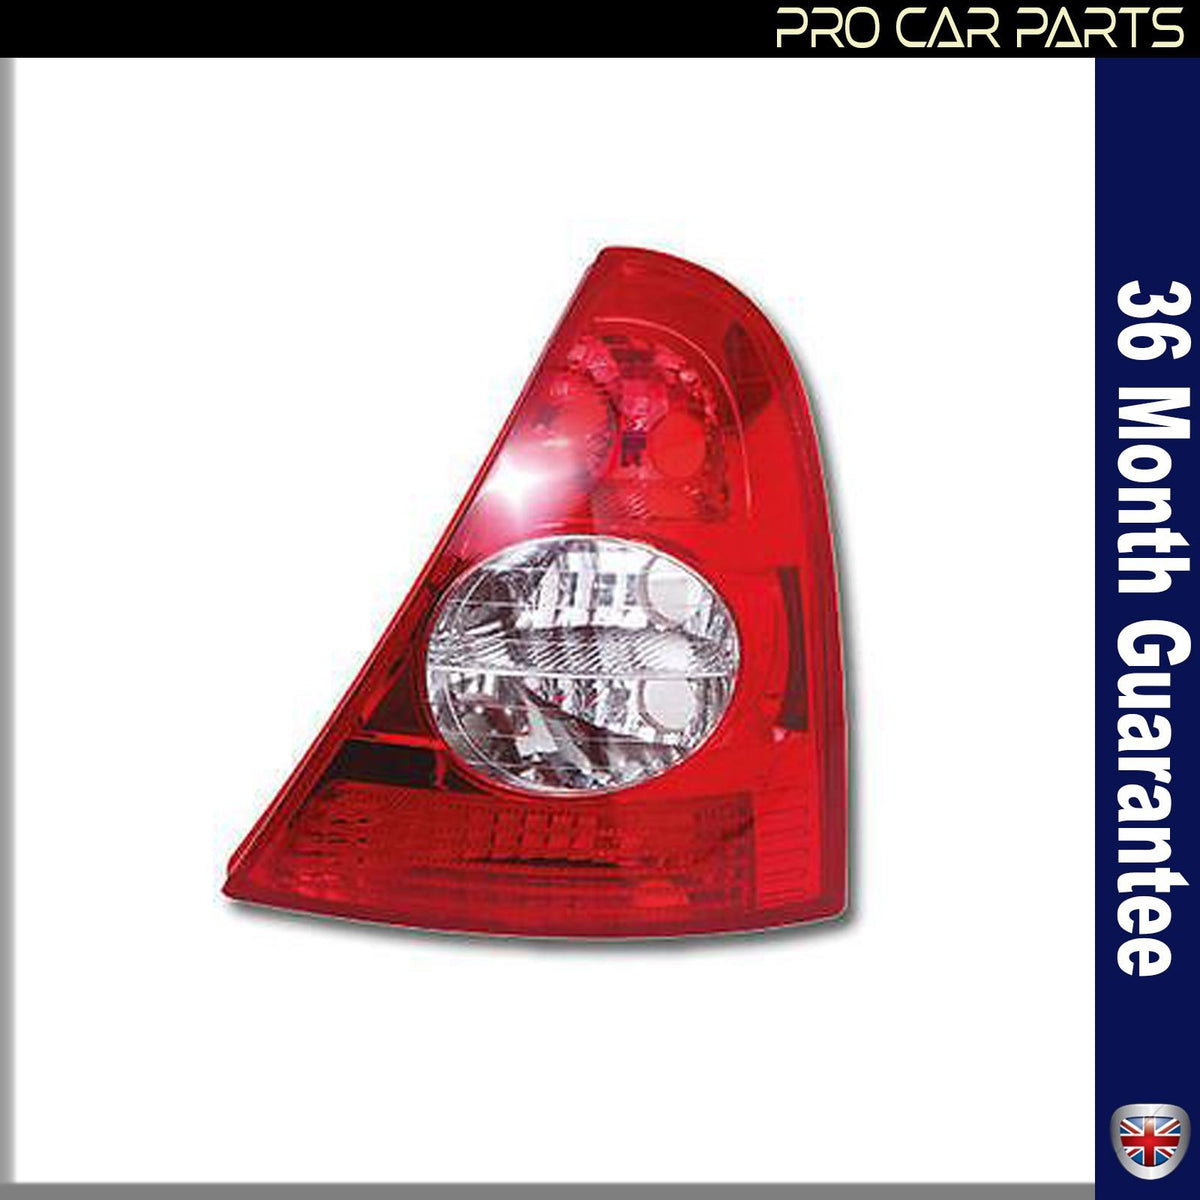 RENAULT CLIO Hatchback Rear Tail Light Lamp Without Bulb Holder Left Side